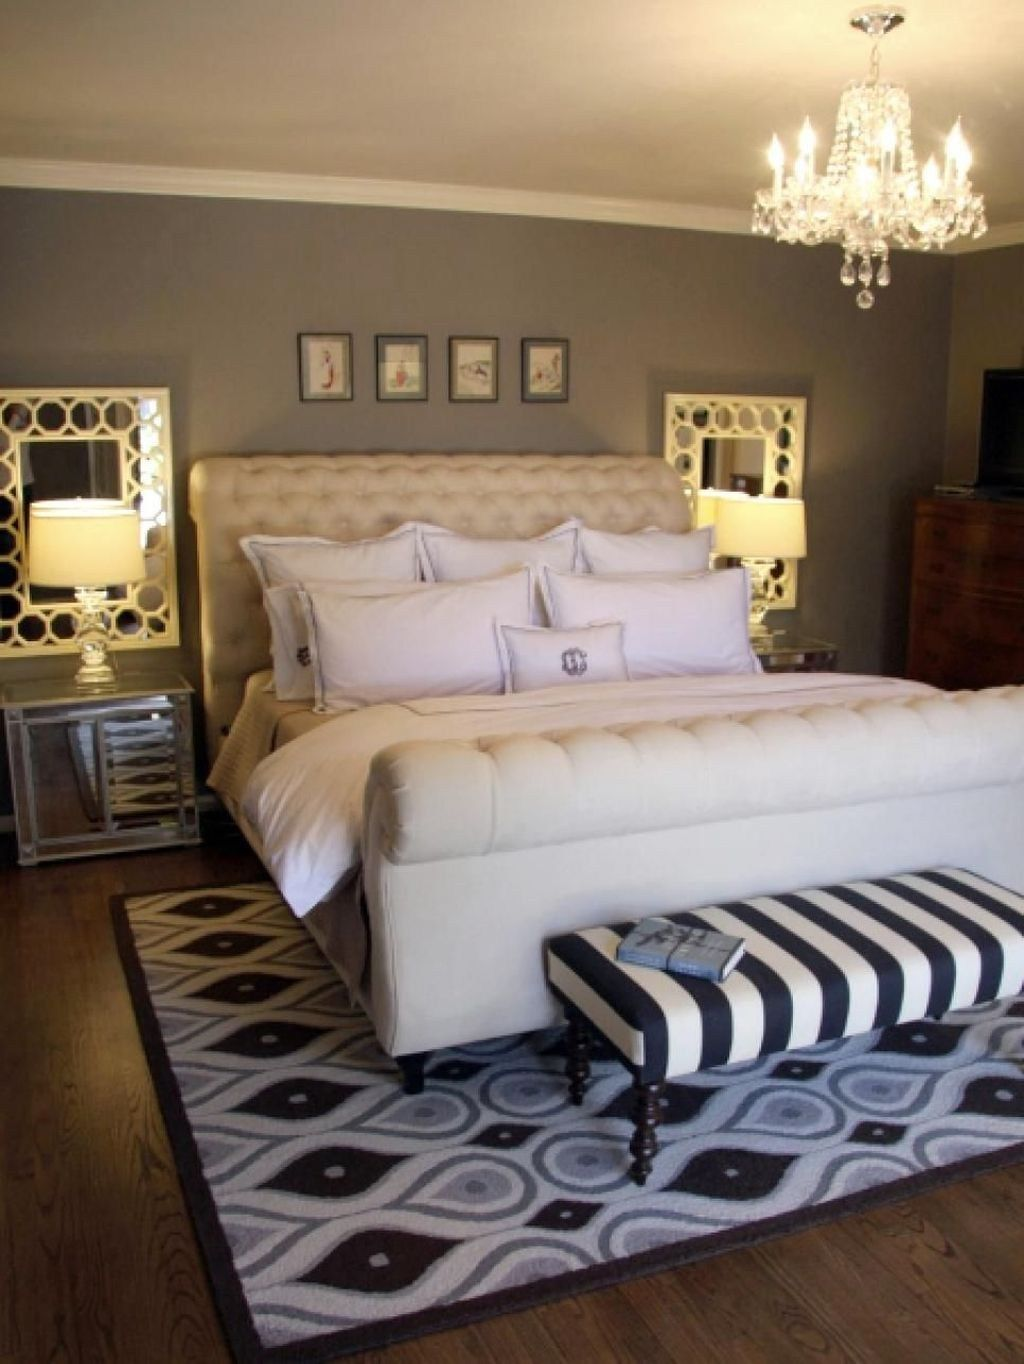 44 Amazing Apartment Bedroom Ideas On A Budget Trendehouse